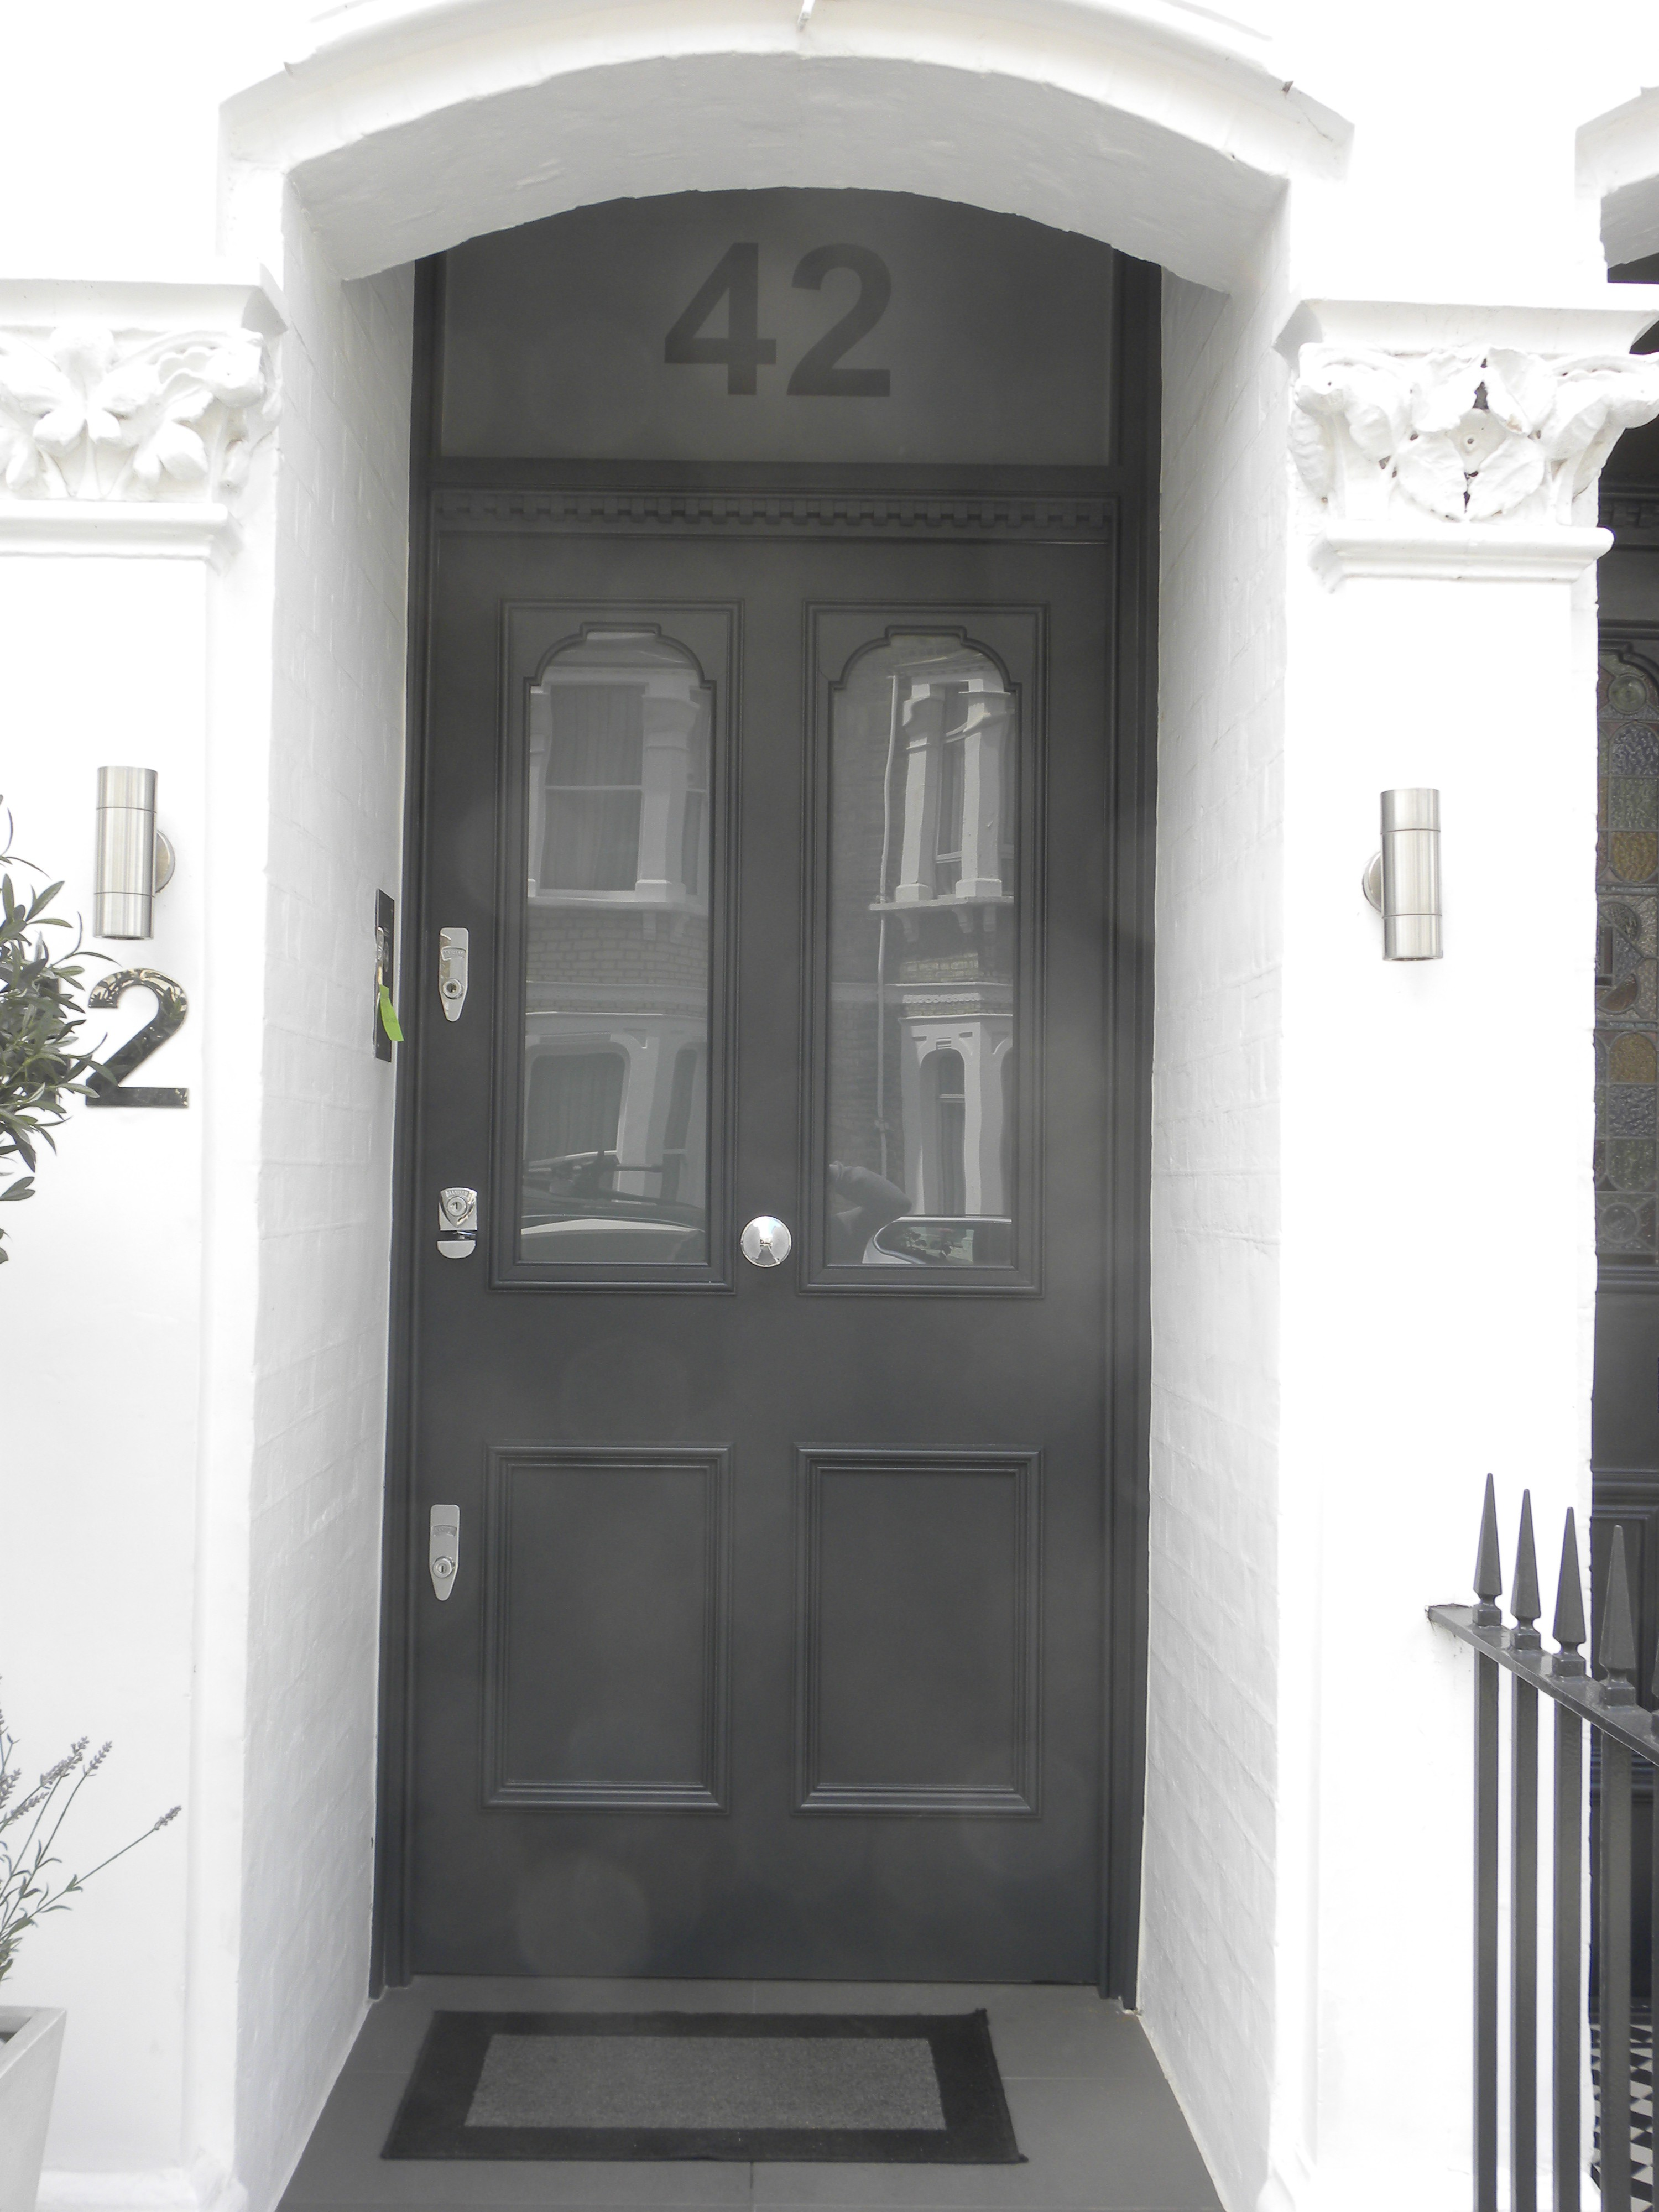 & Hardwood Door installed in South West London | Joinery For All Seaons pezcame.com